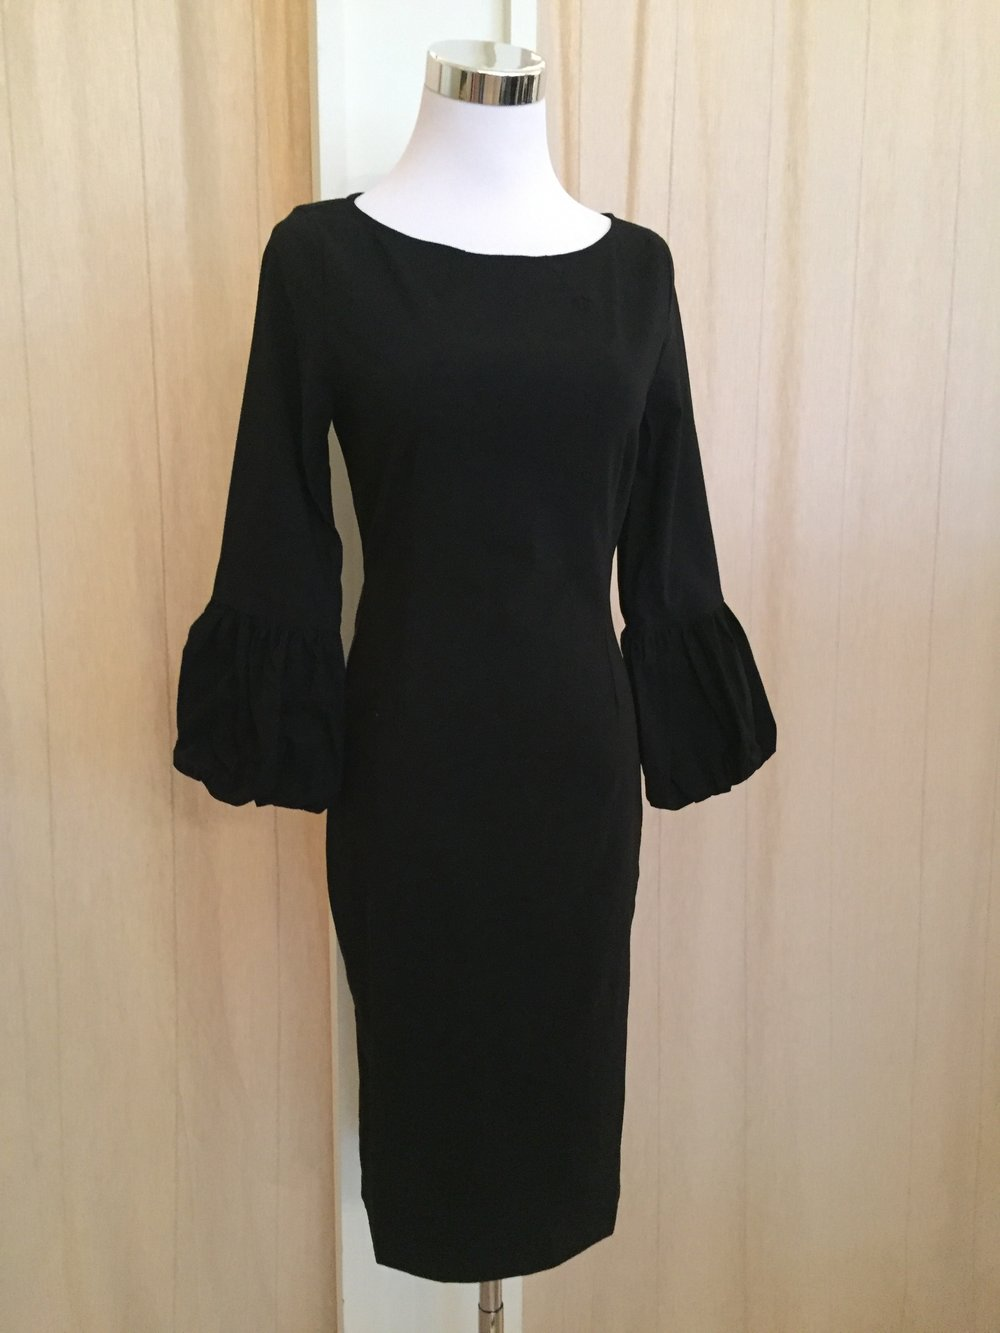 Poof sleeve dress $58